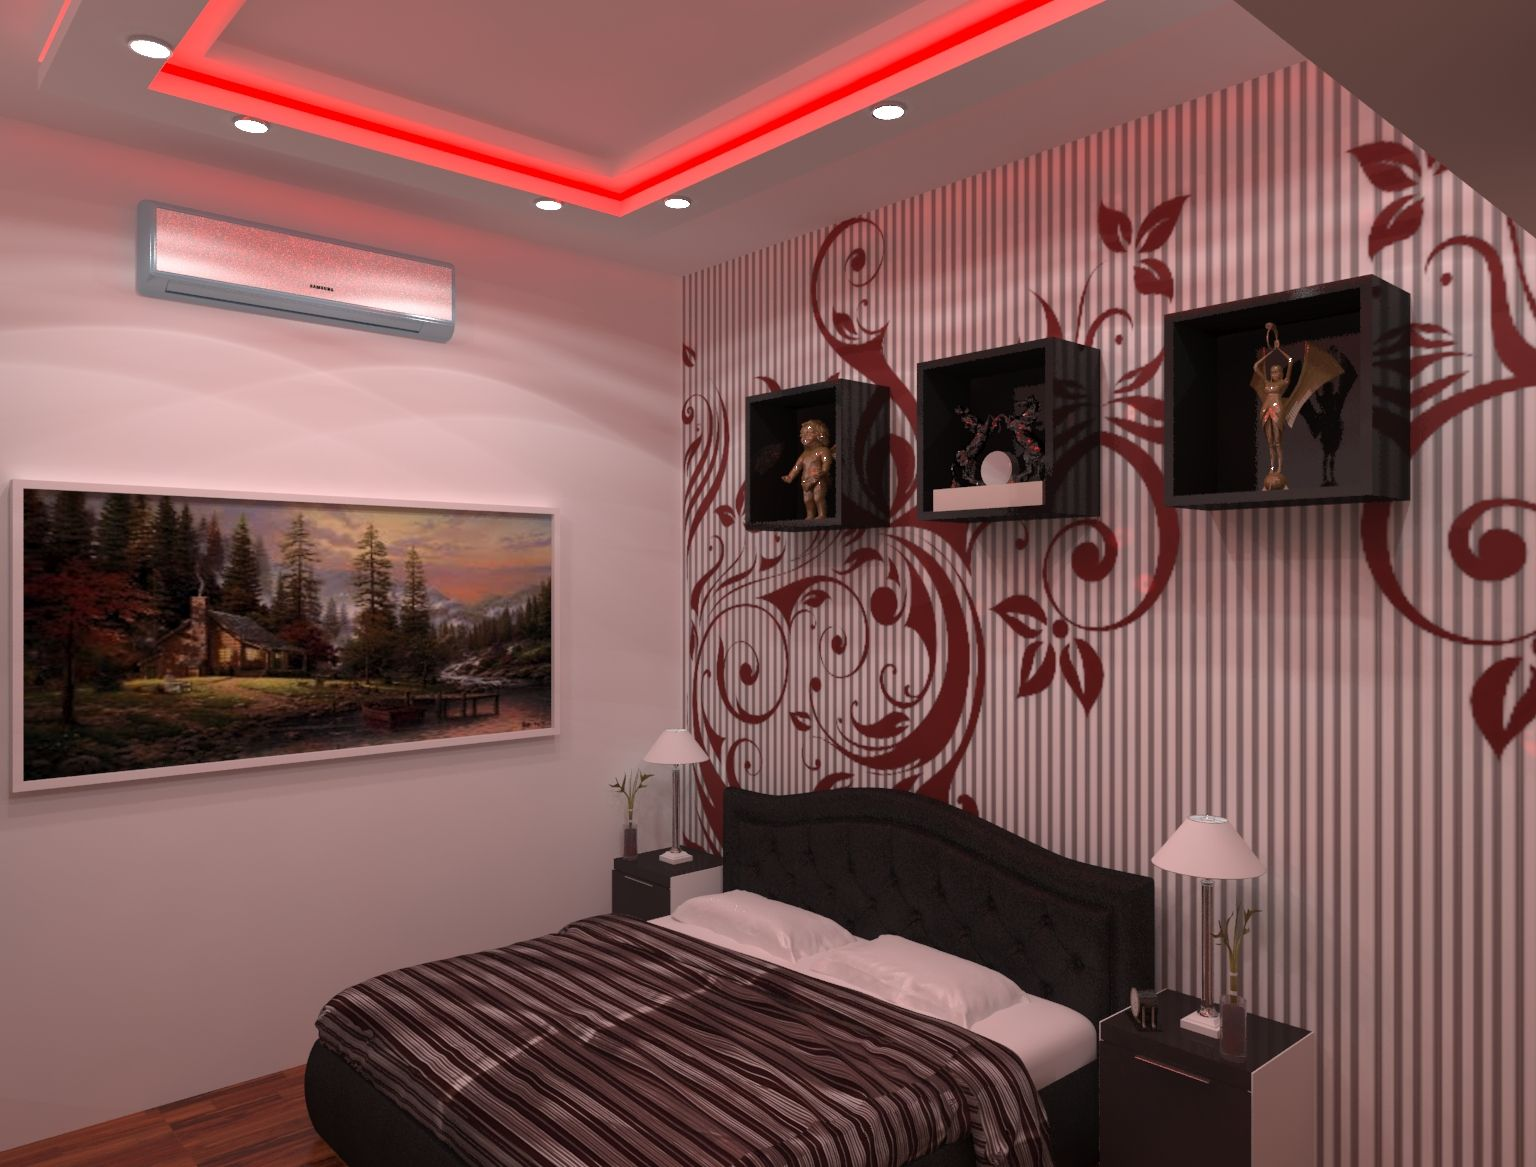 Home Interior Design Work Done In 3ds Max And V Ray Interior